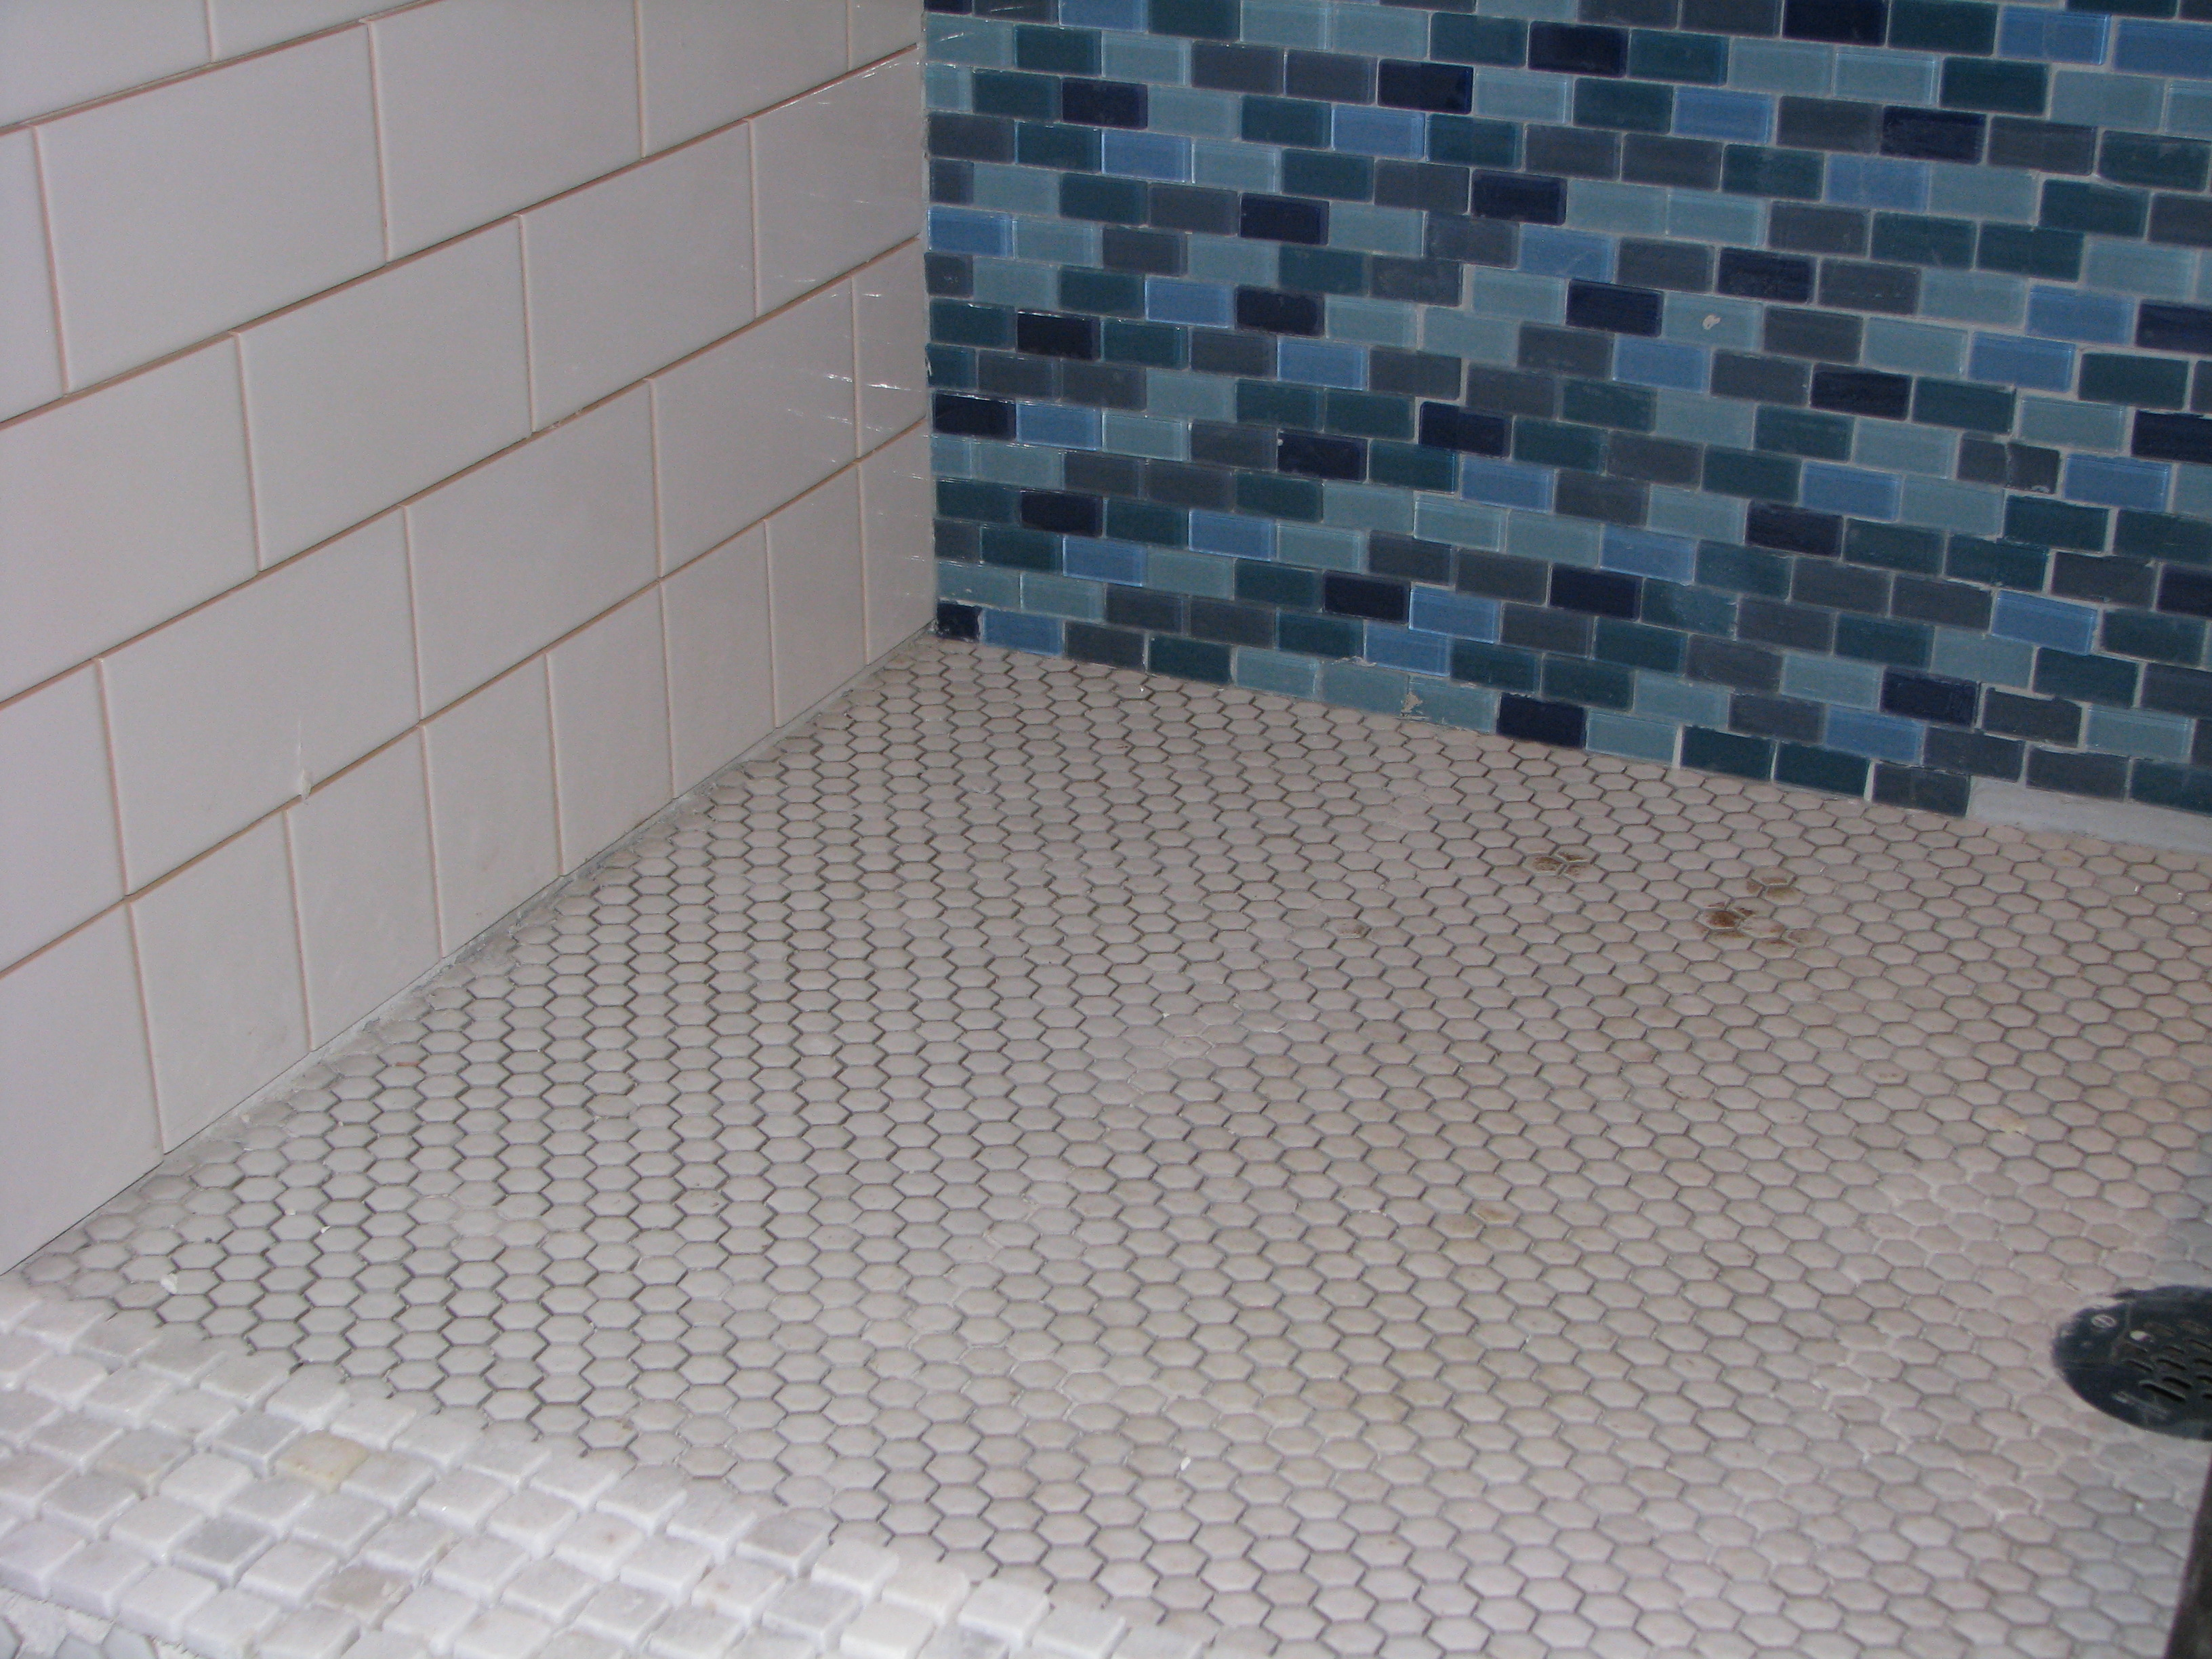 Bathroom Floor Tiles Weight : Cool ideas and pictures beautiful bathroom tile design